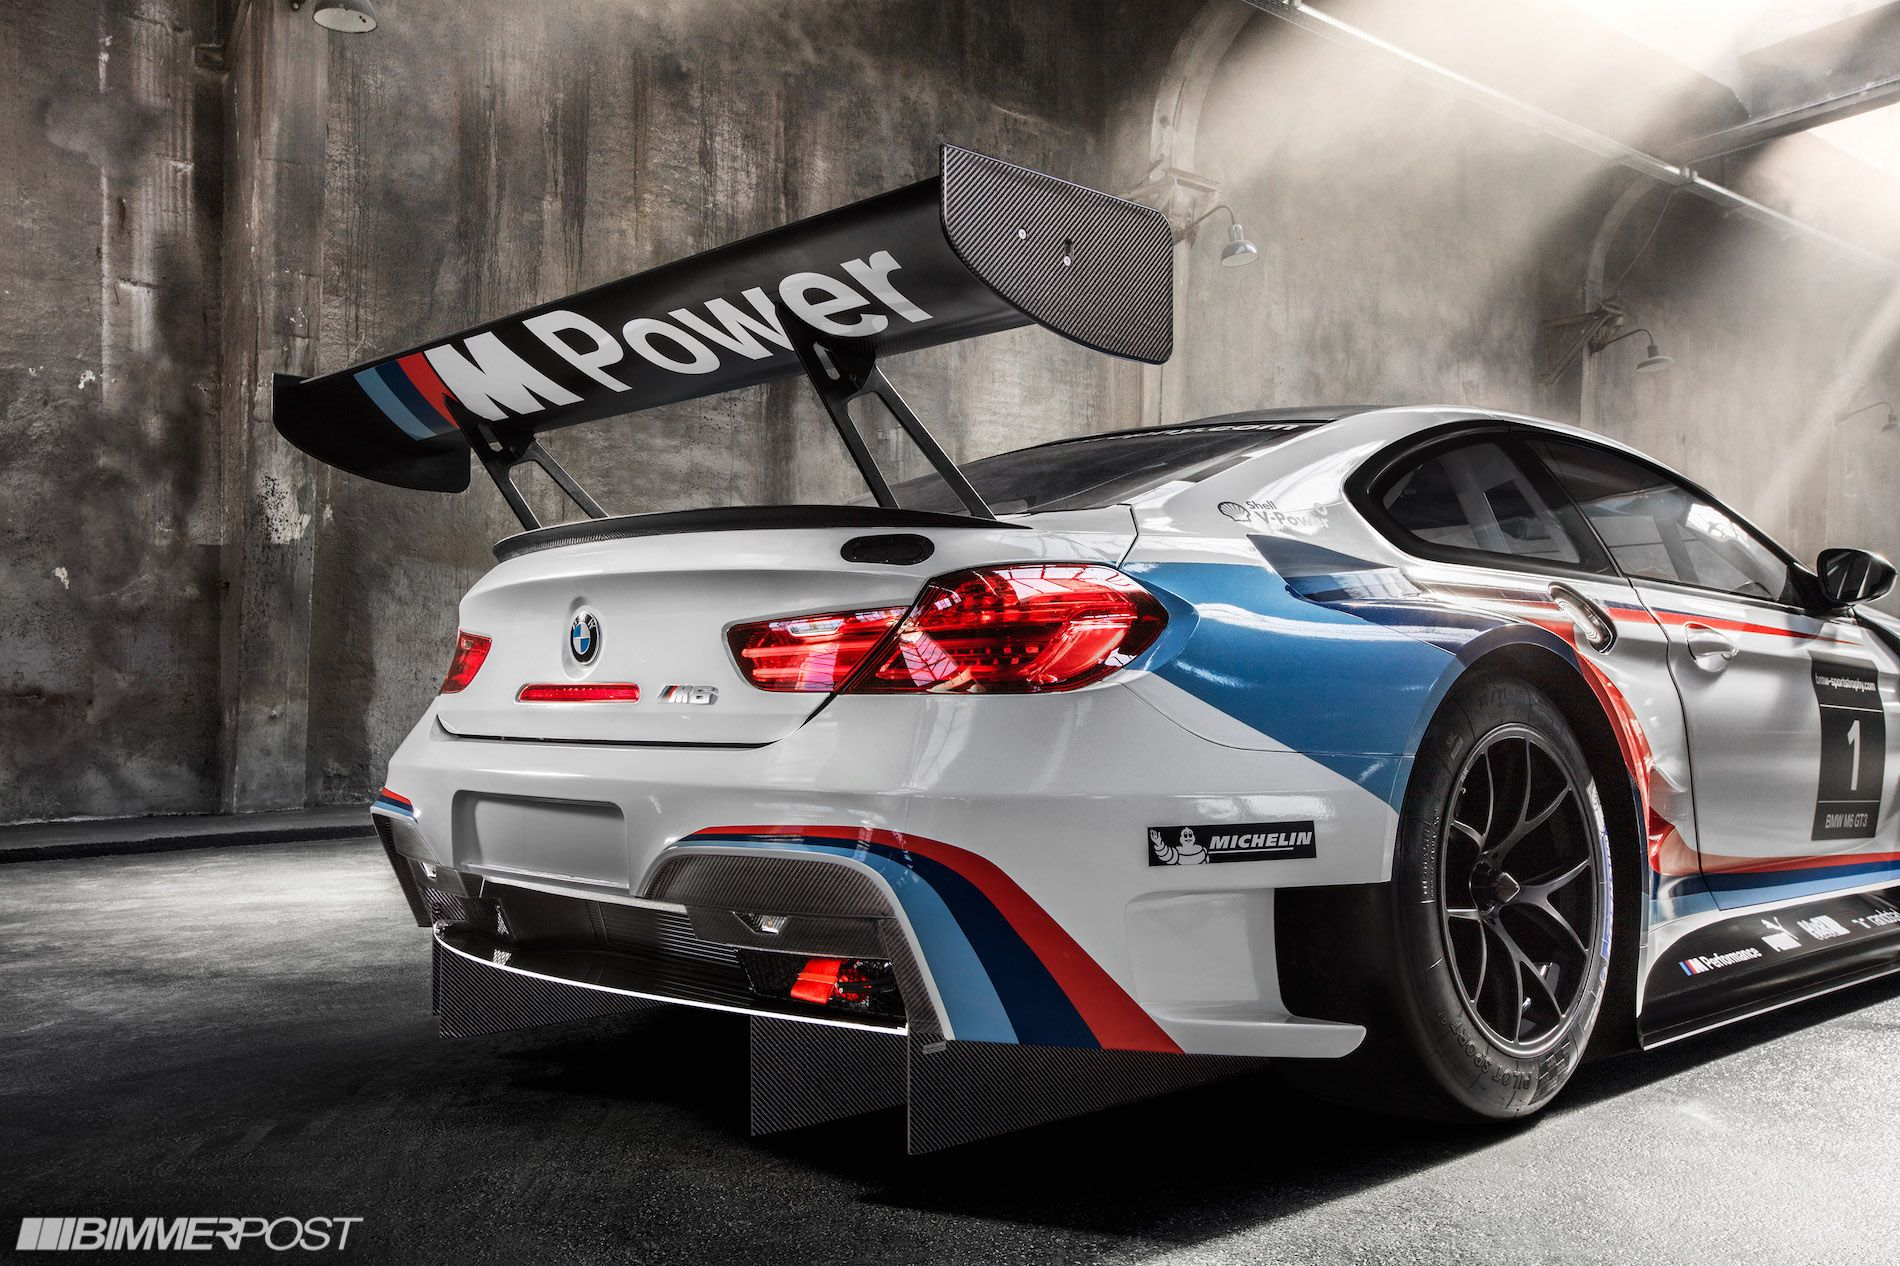 Presenting the bmw m6 gt3